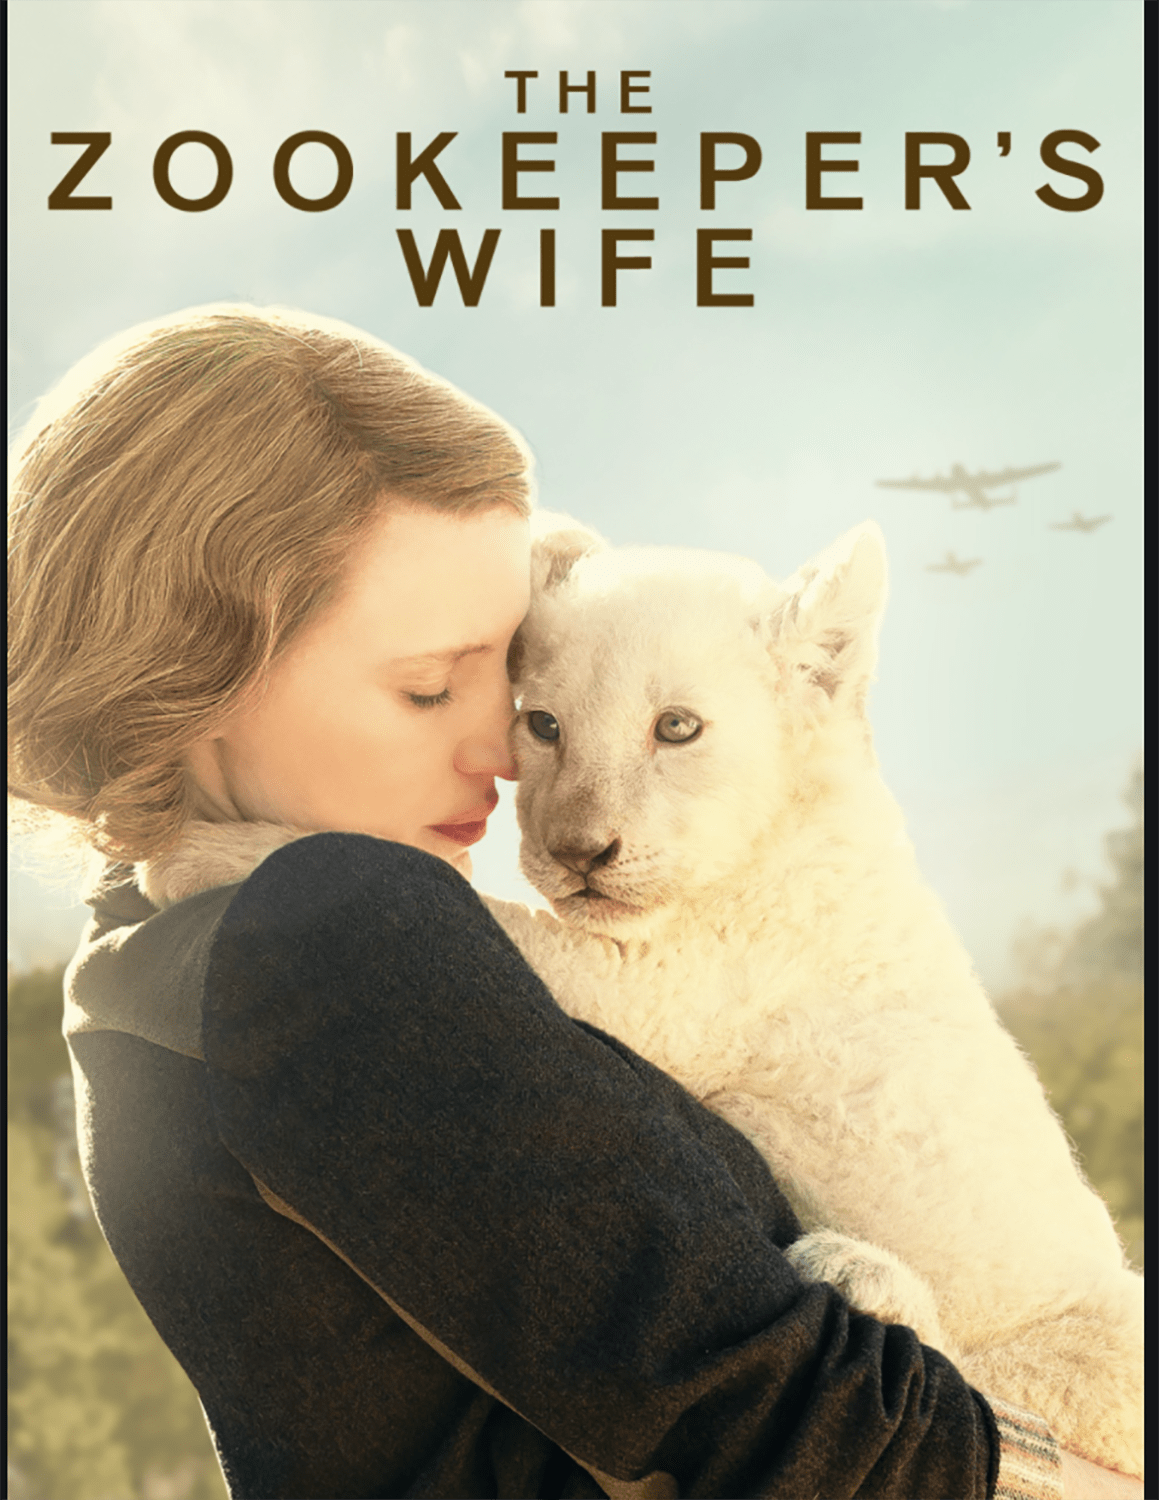 zookeepers wife graphic